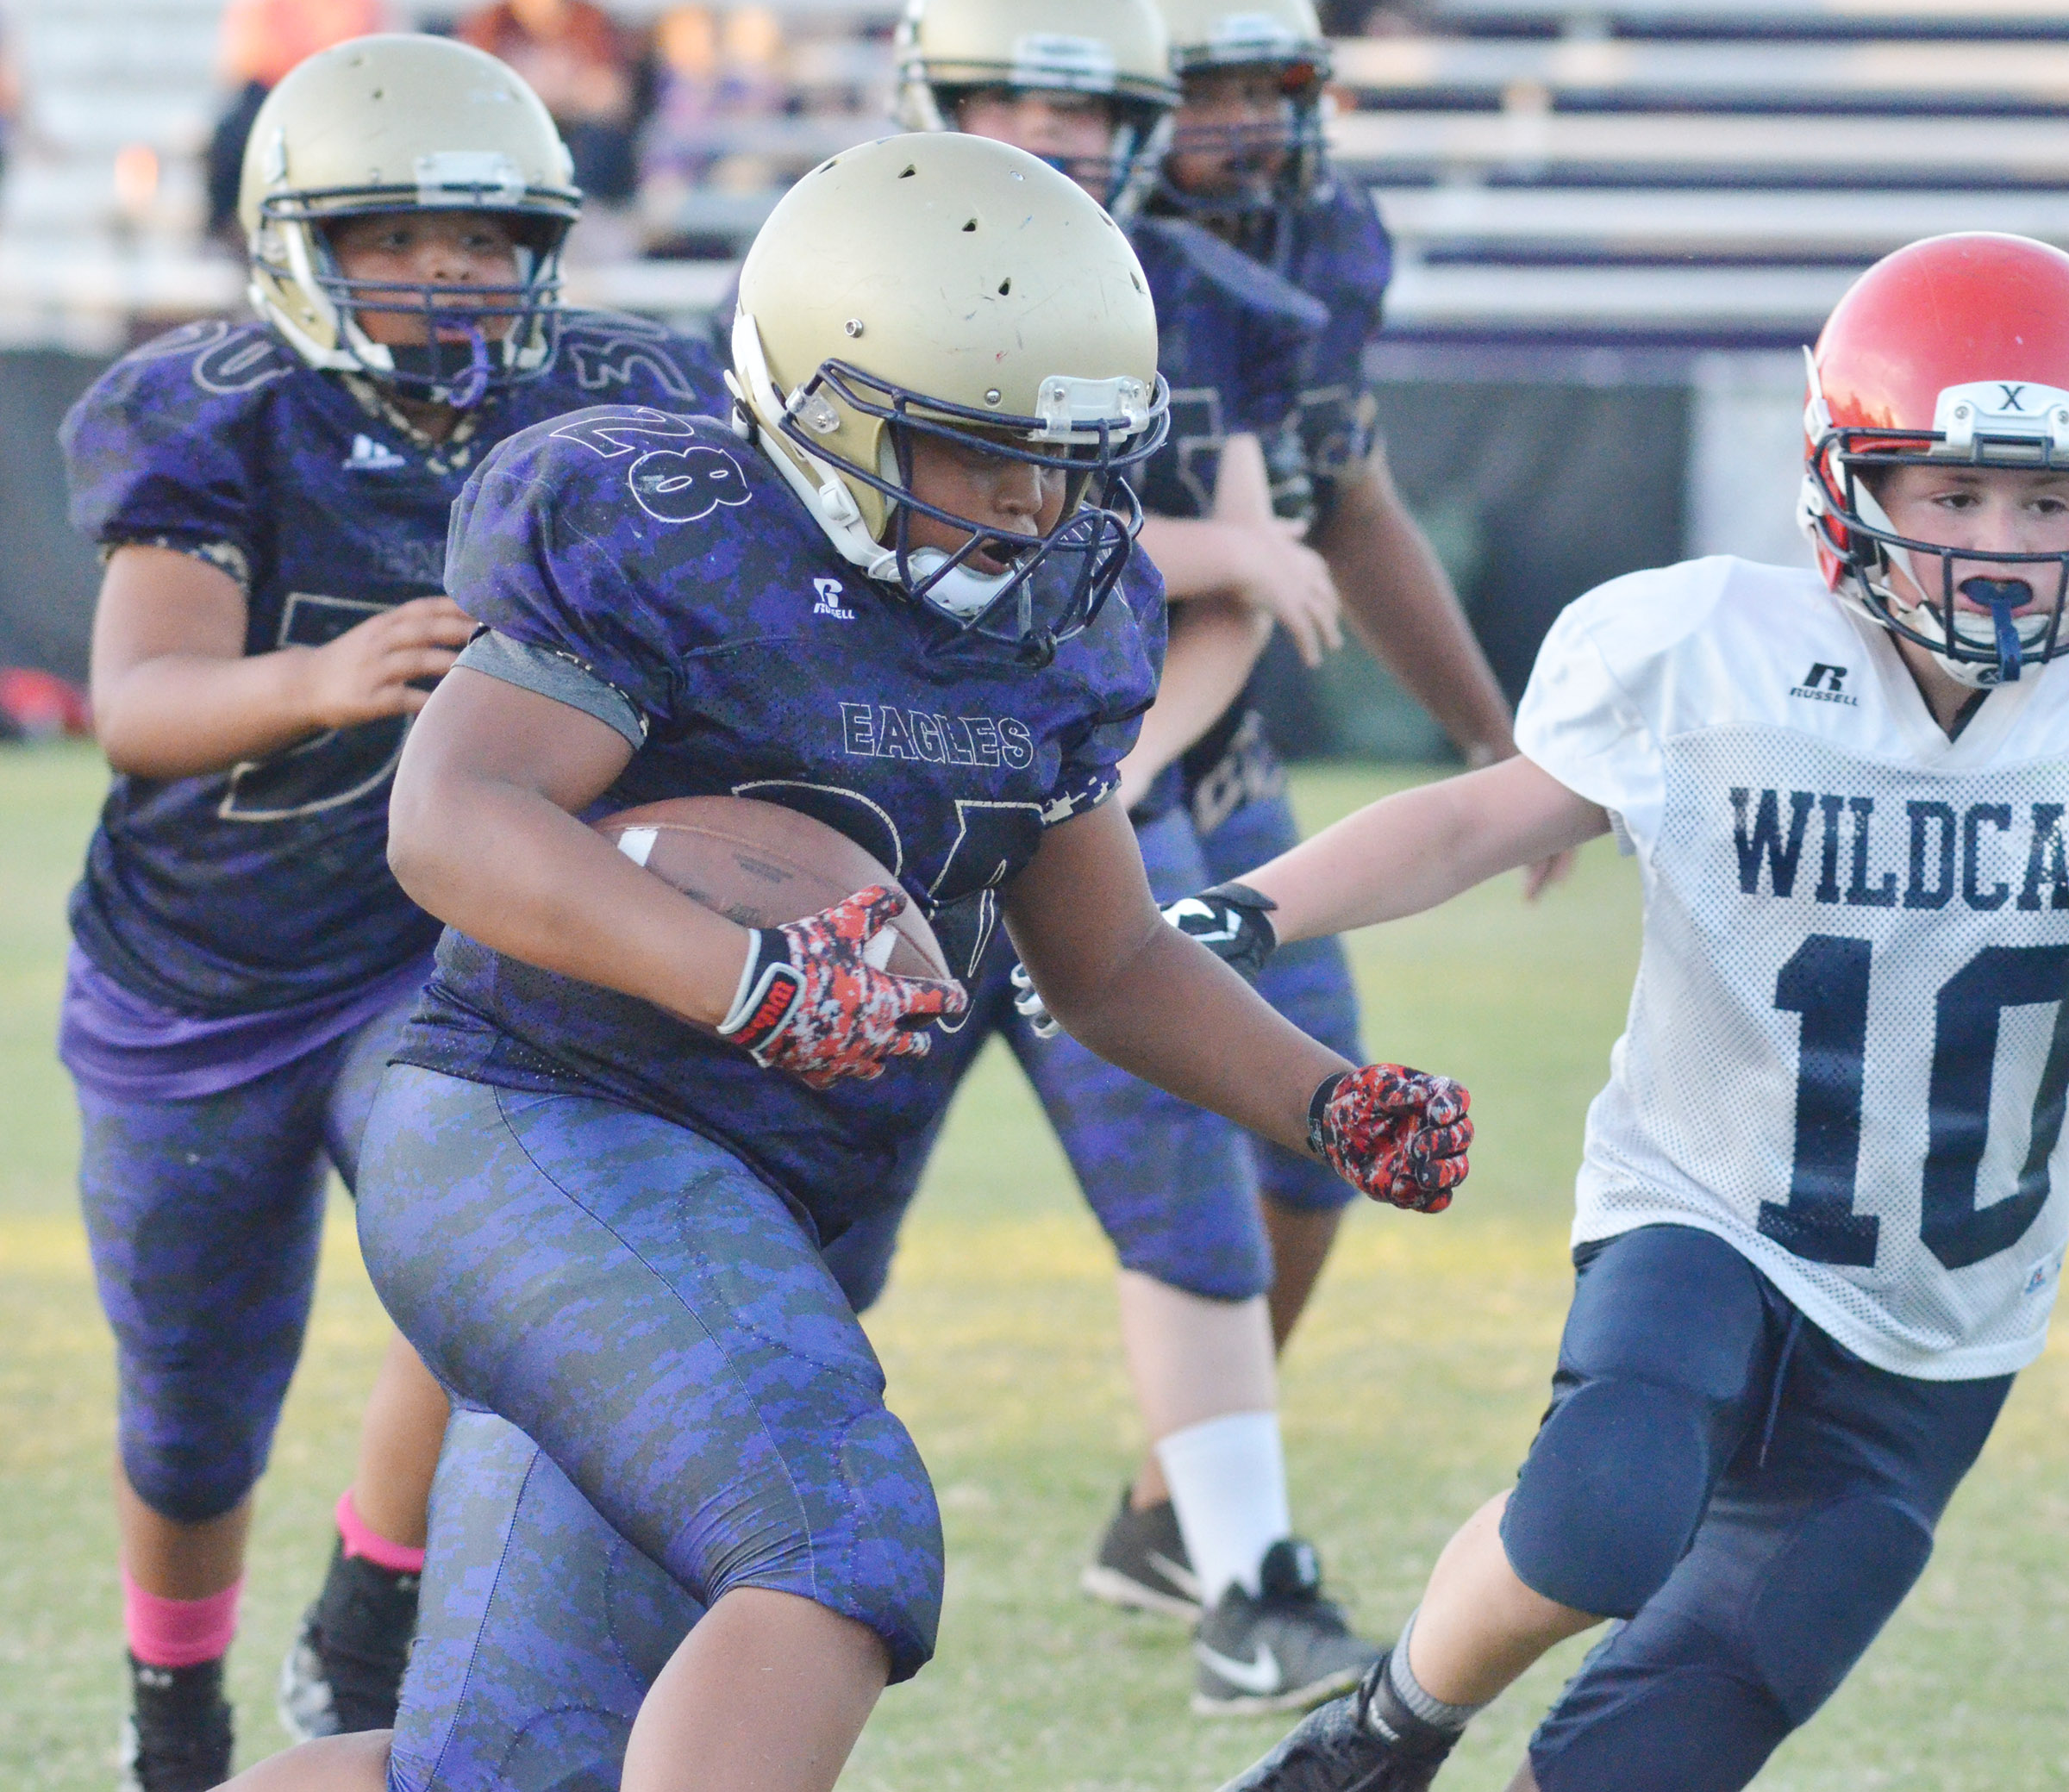 CMS seventh-grader Keondre Weathers runs the ball.